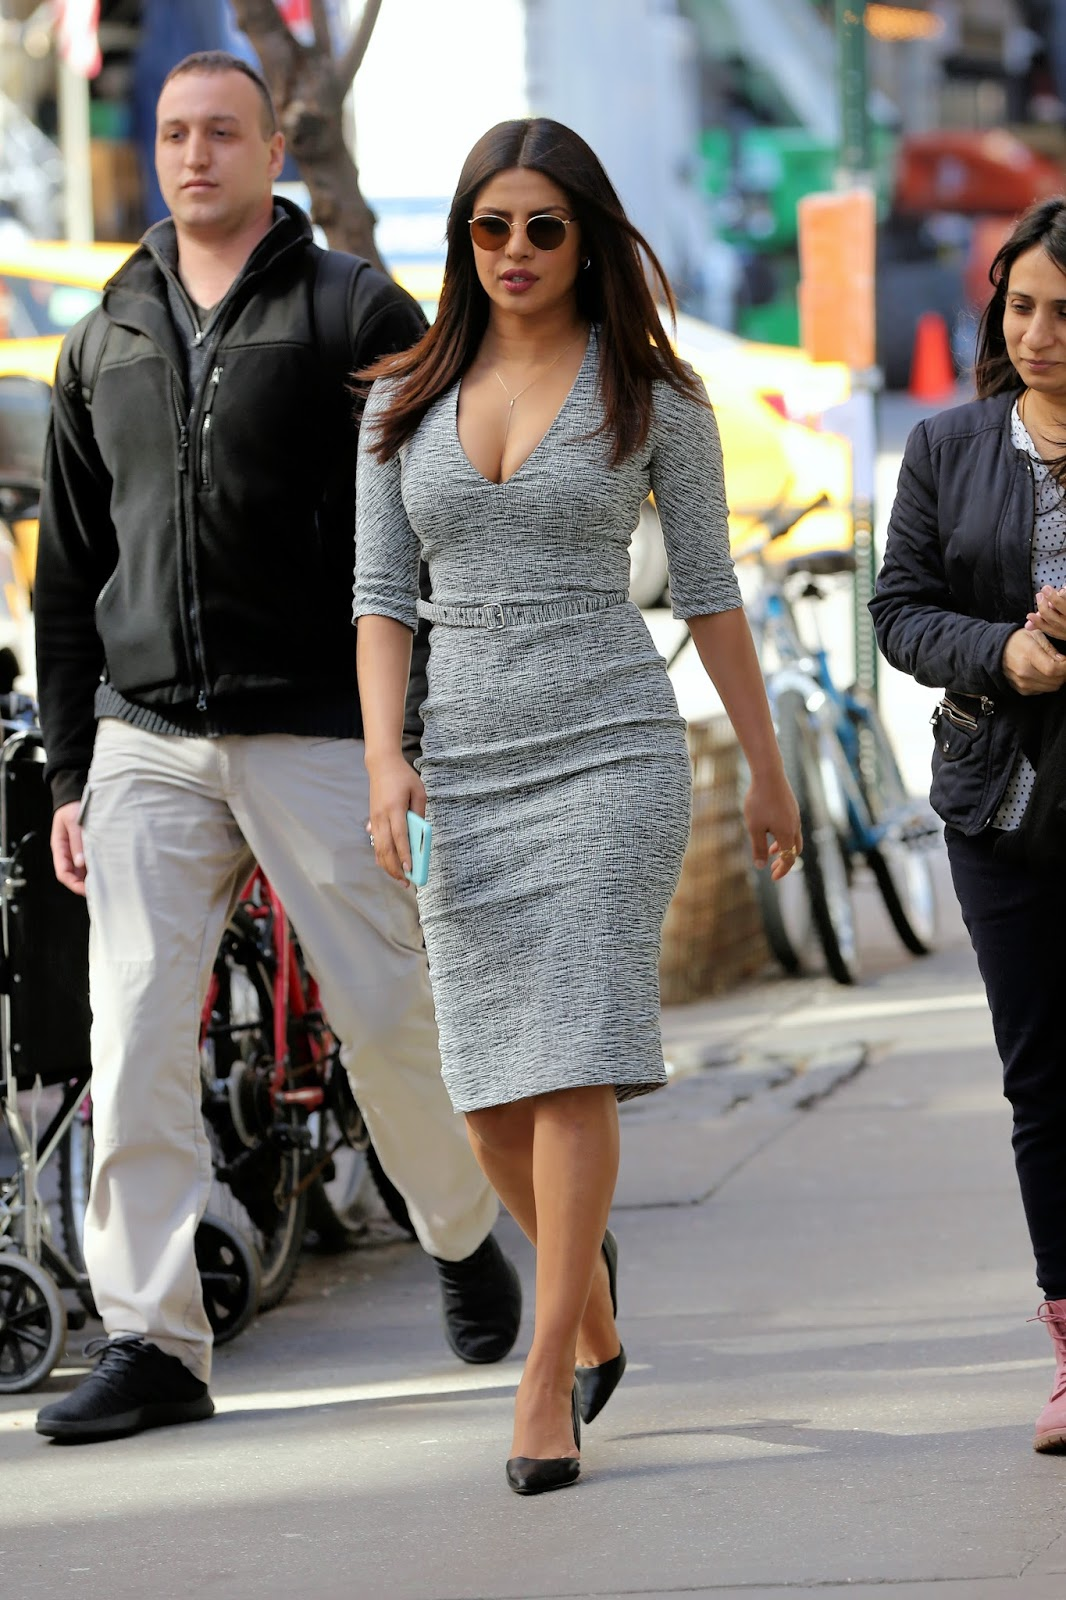 Priyanka Chopra Super Sexy Cleavage Show On The Sets Of Quantico In New York